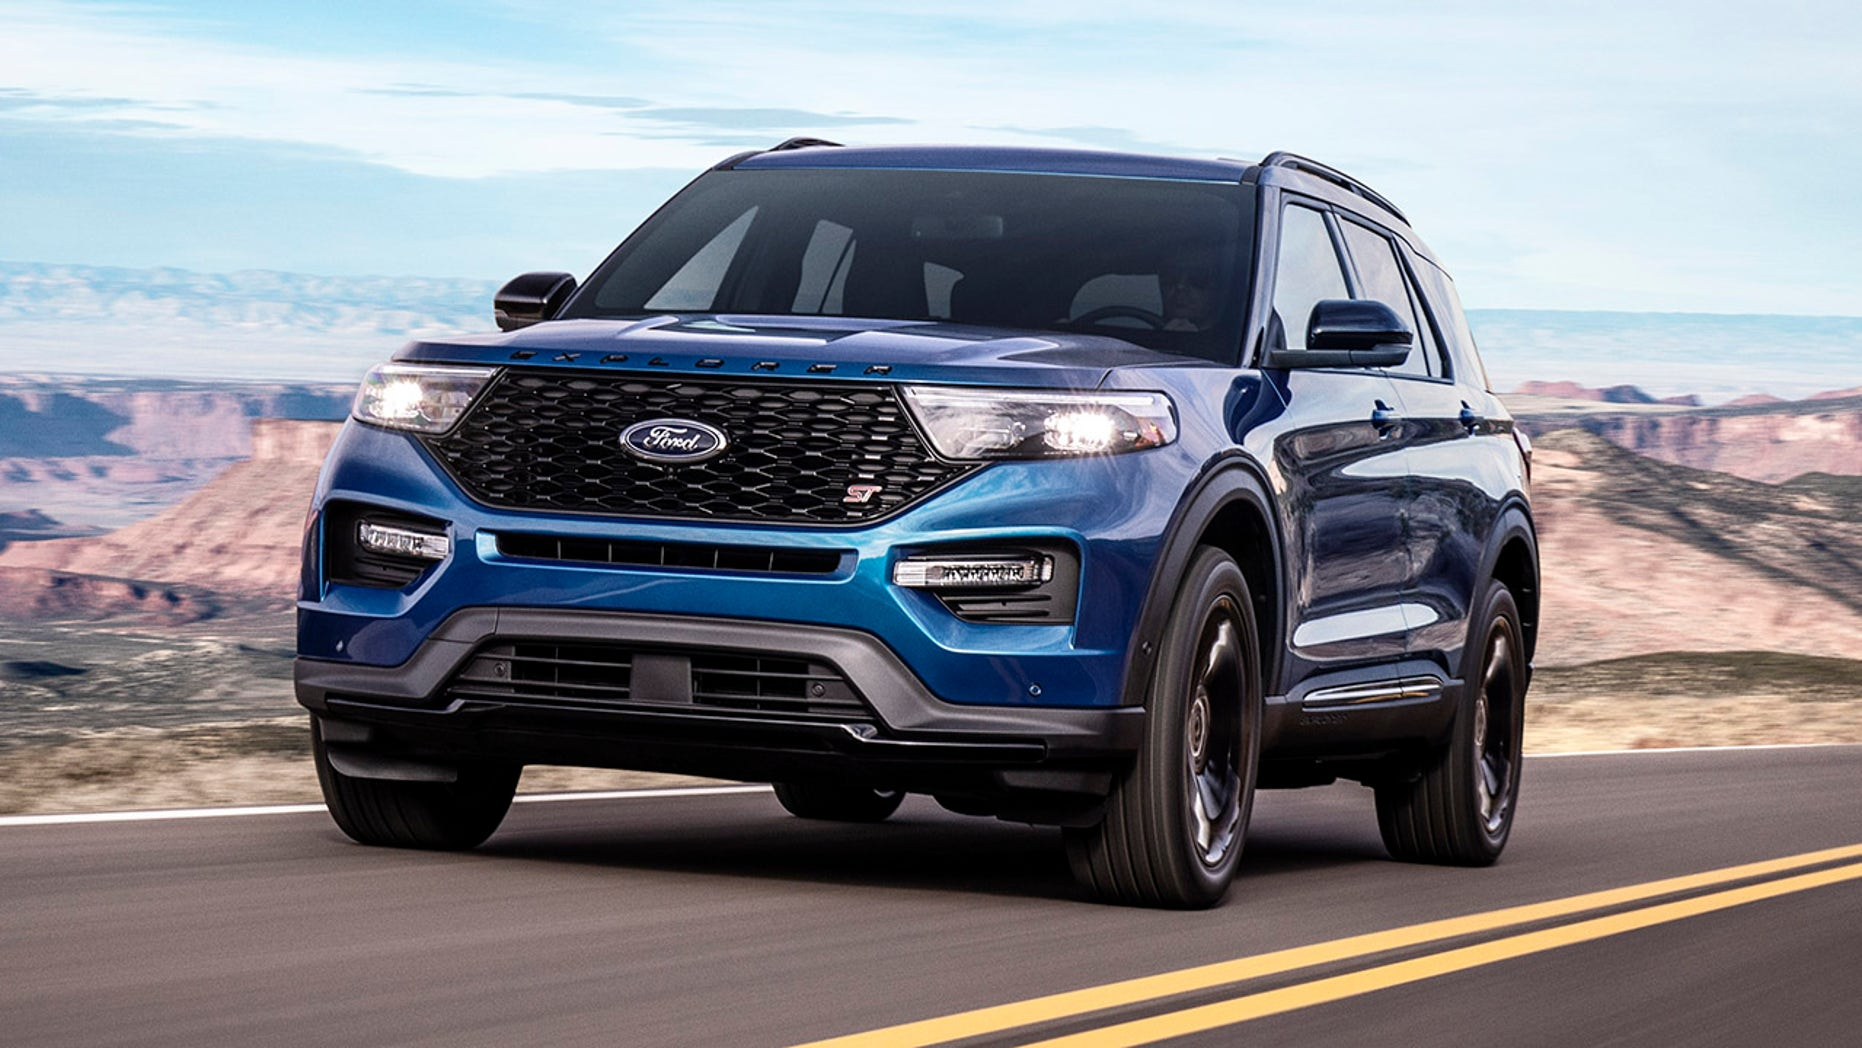 The Explorer ST is Ford's first large performance SUV